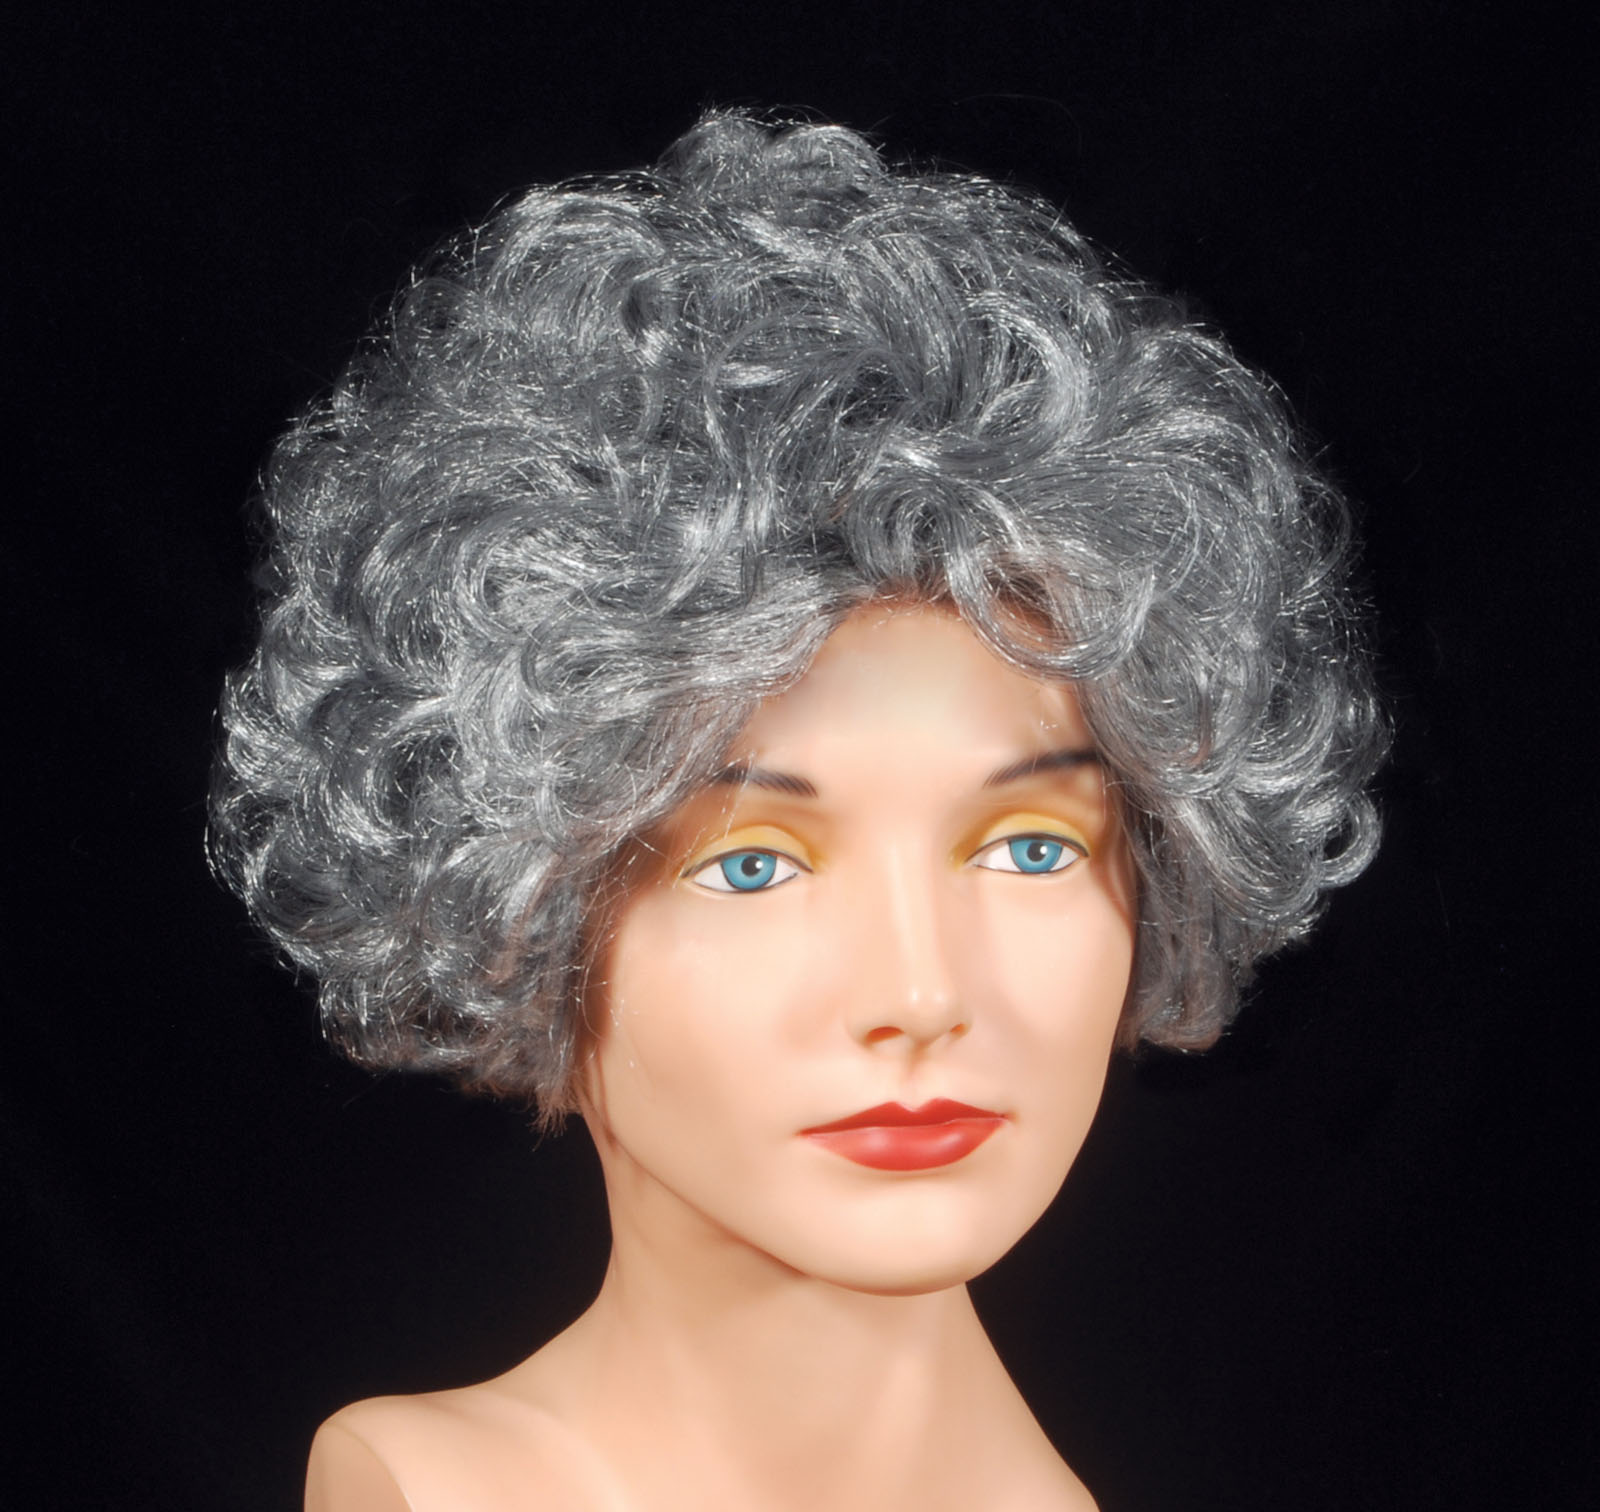 Loftus Curly Short Grandma Old Lady Costume Wig, Gray, One Size